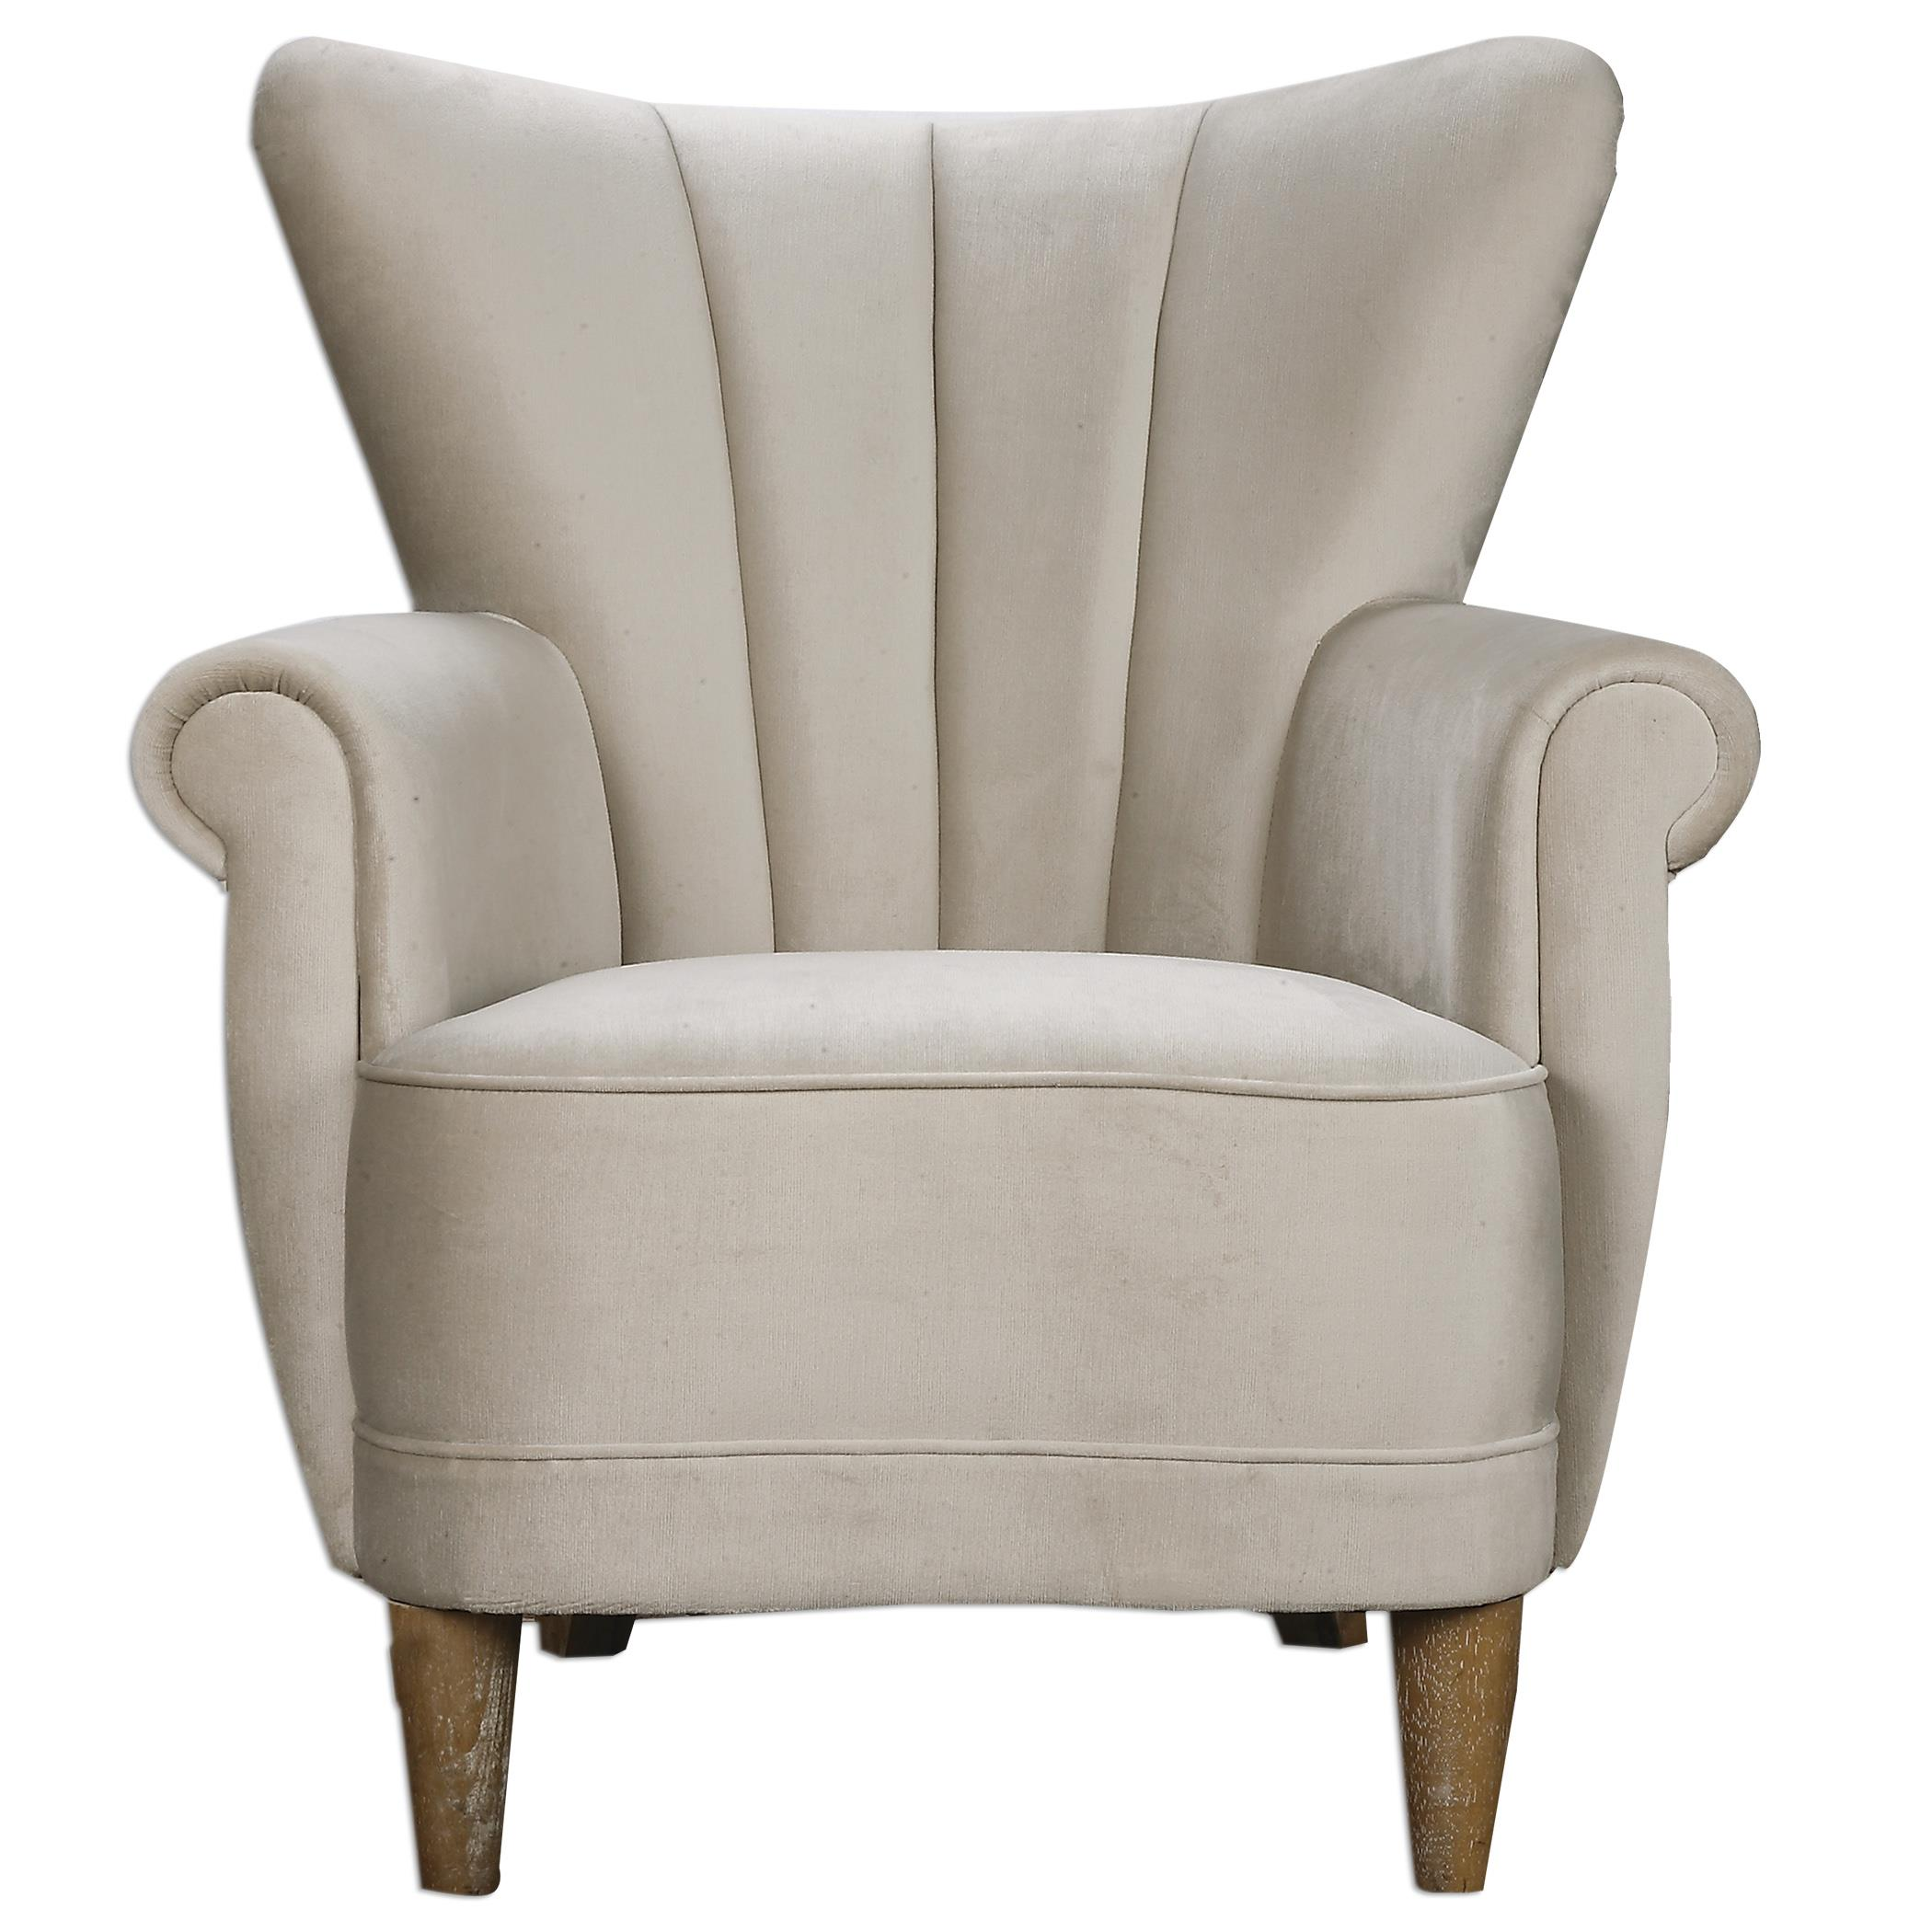 Uttermost Accent Furniture Franchette Butterfly-back Armchair - Item Number: 23231